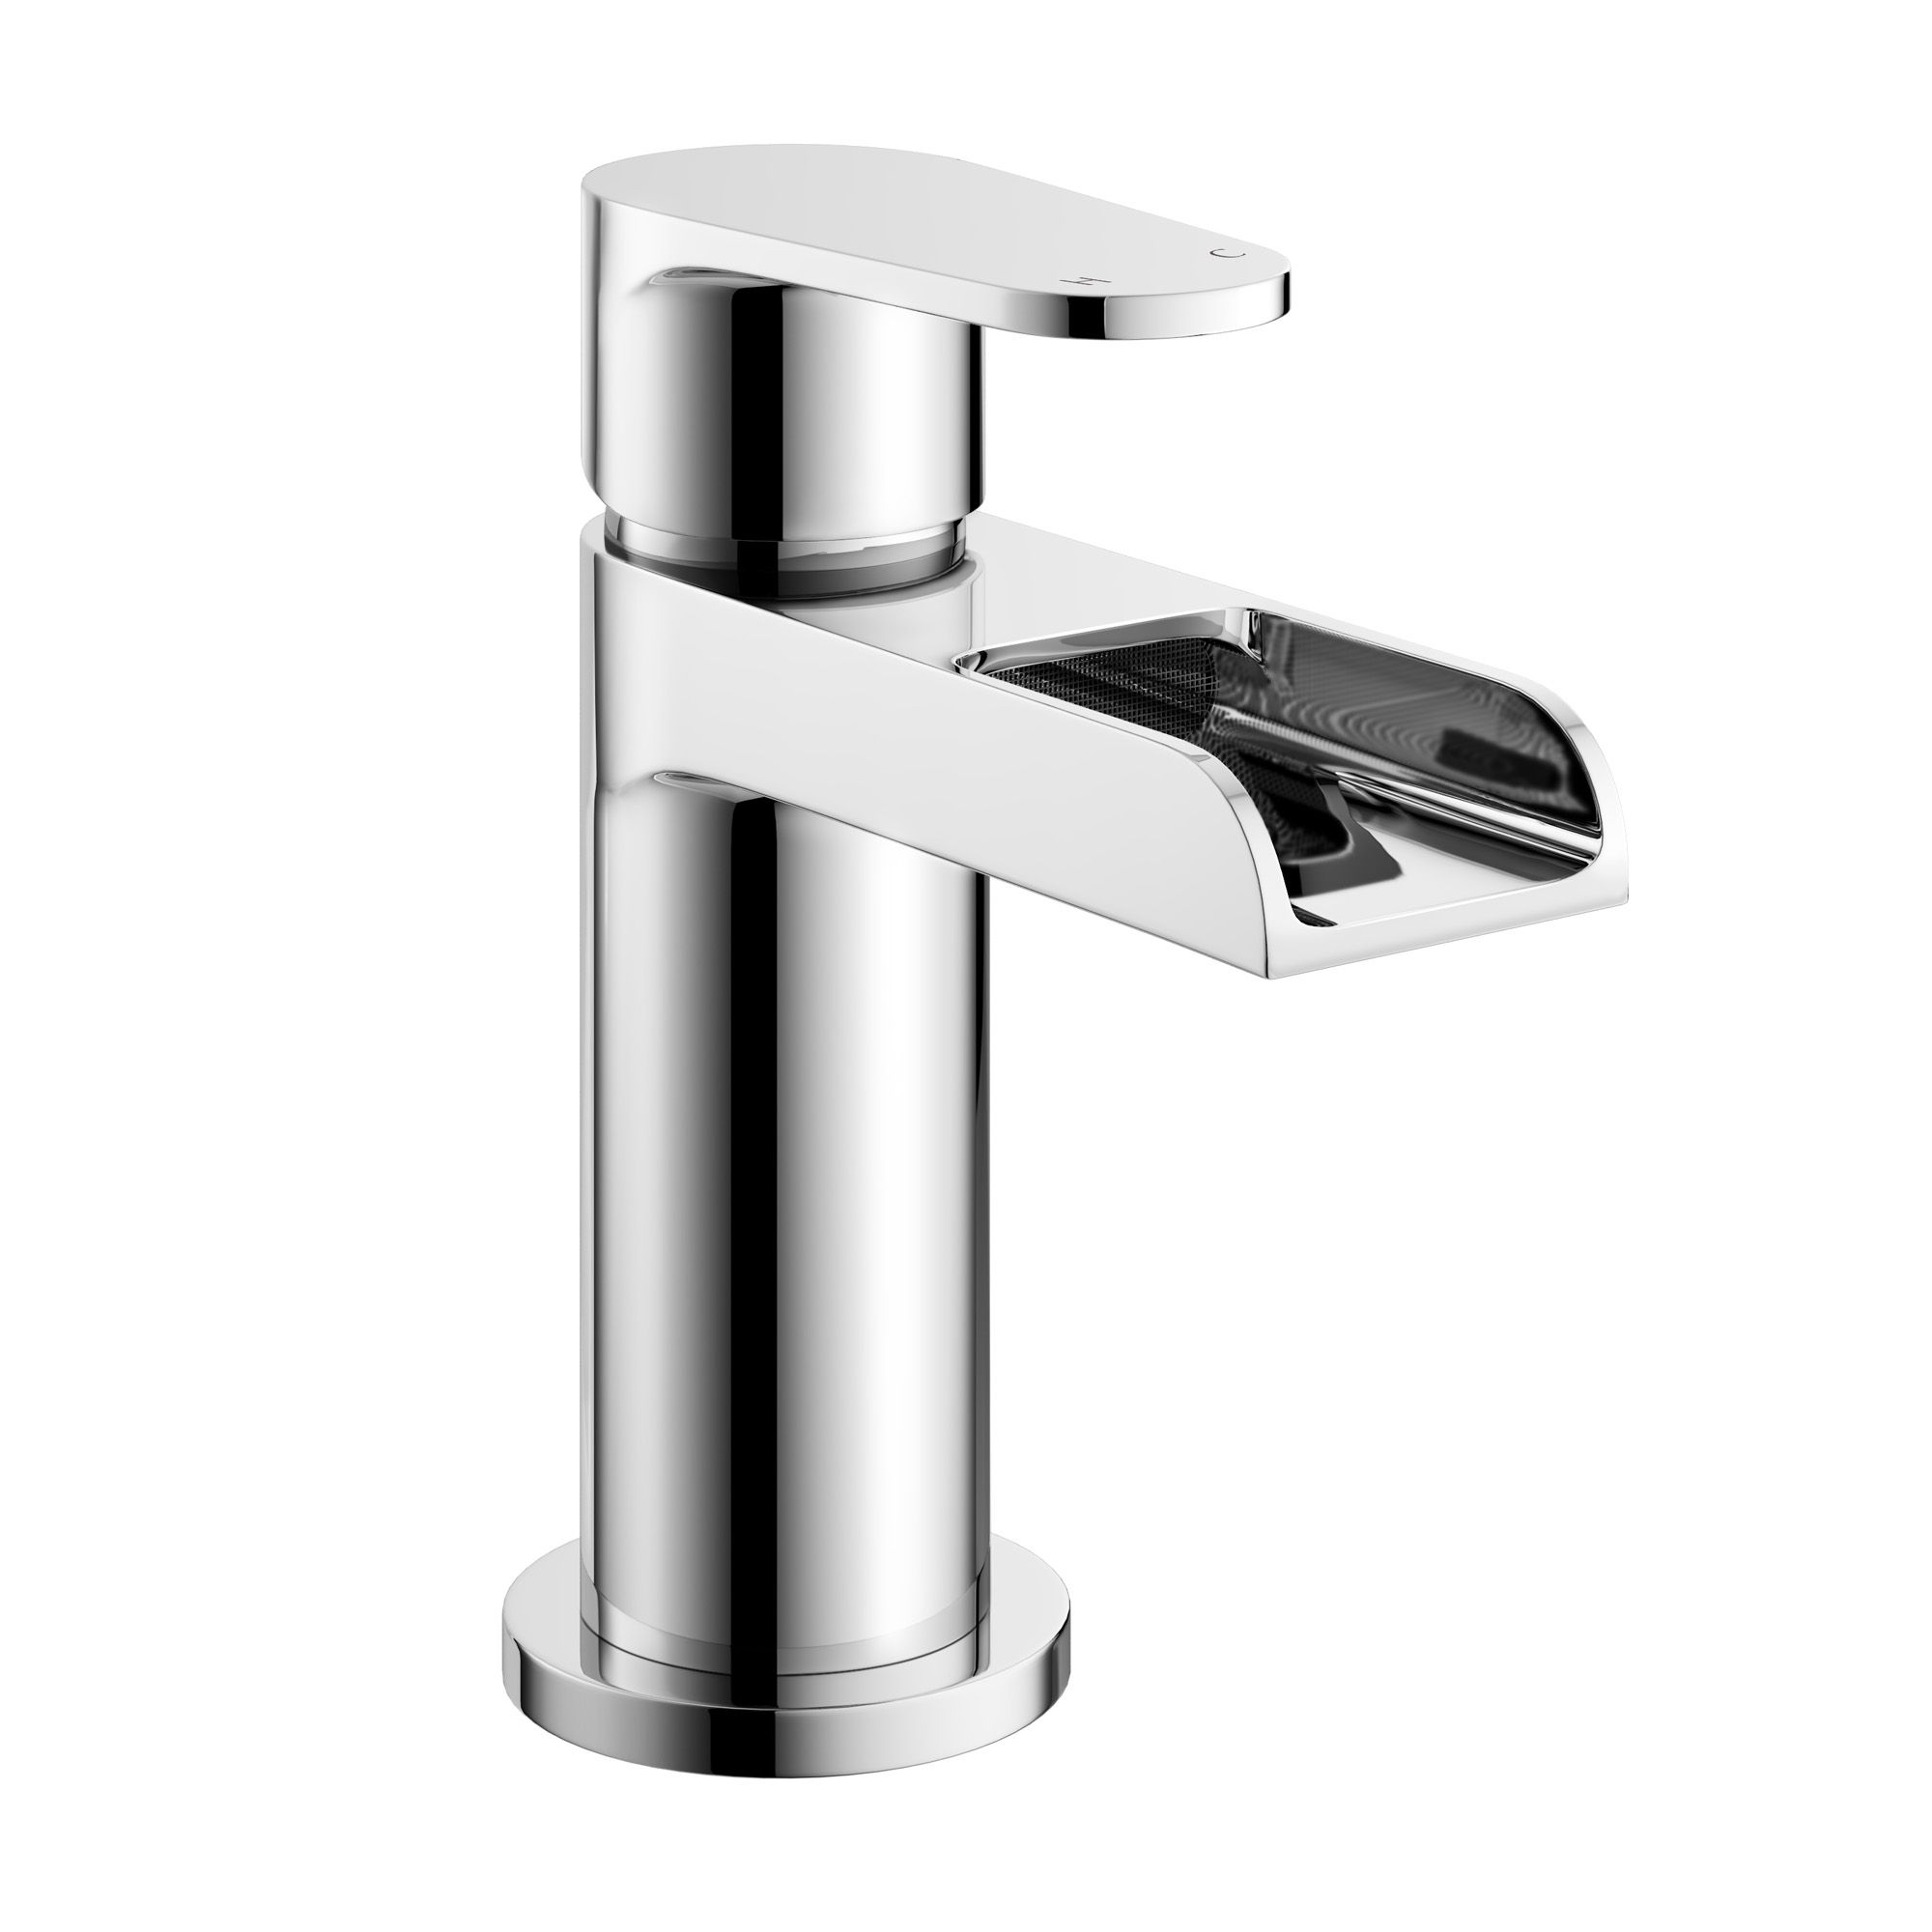 Vienna Waterfall Basin Tap • Modern Design • Kit includes fixtures ...